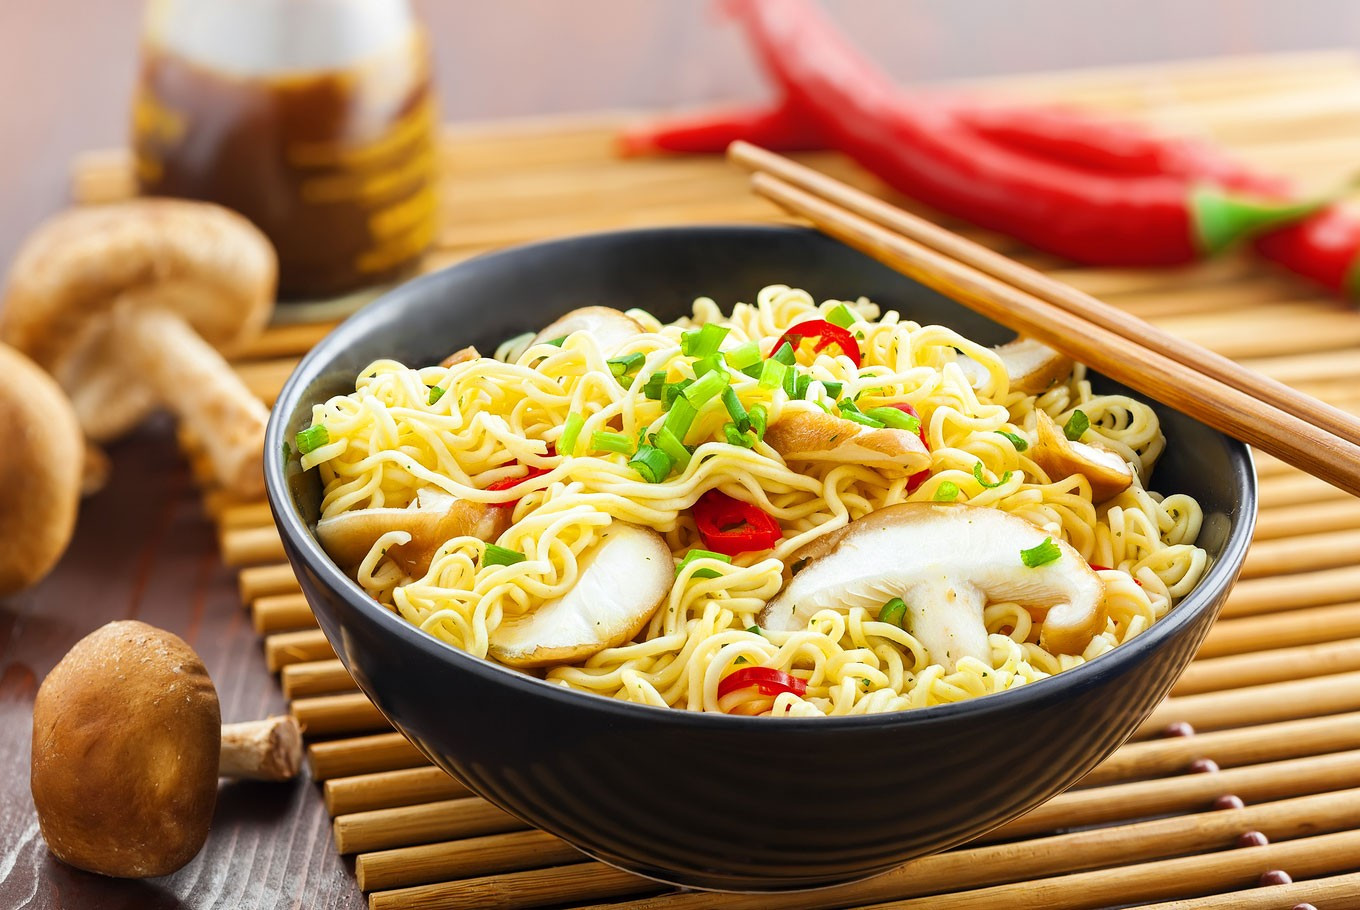 Are Rice Noodles Healthy  Rice vs noodles Which is healthier Health The